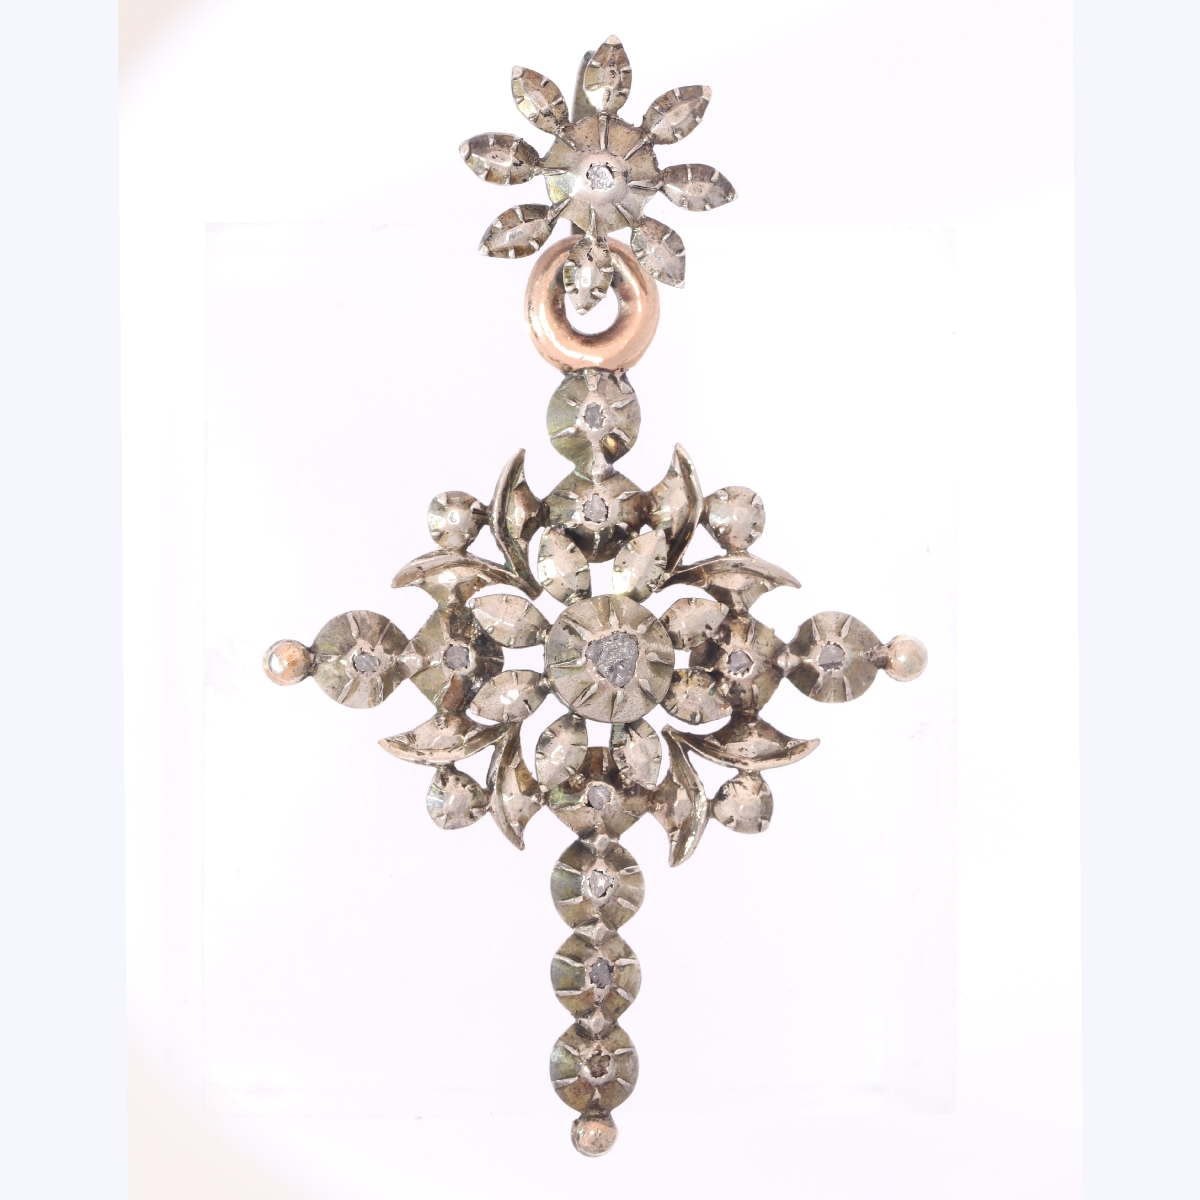 Typical Belgian Victorian rose cut diamond cross pendant 19th century